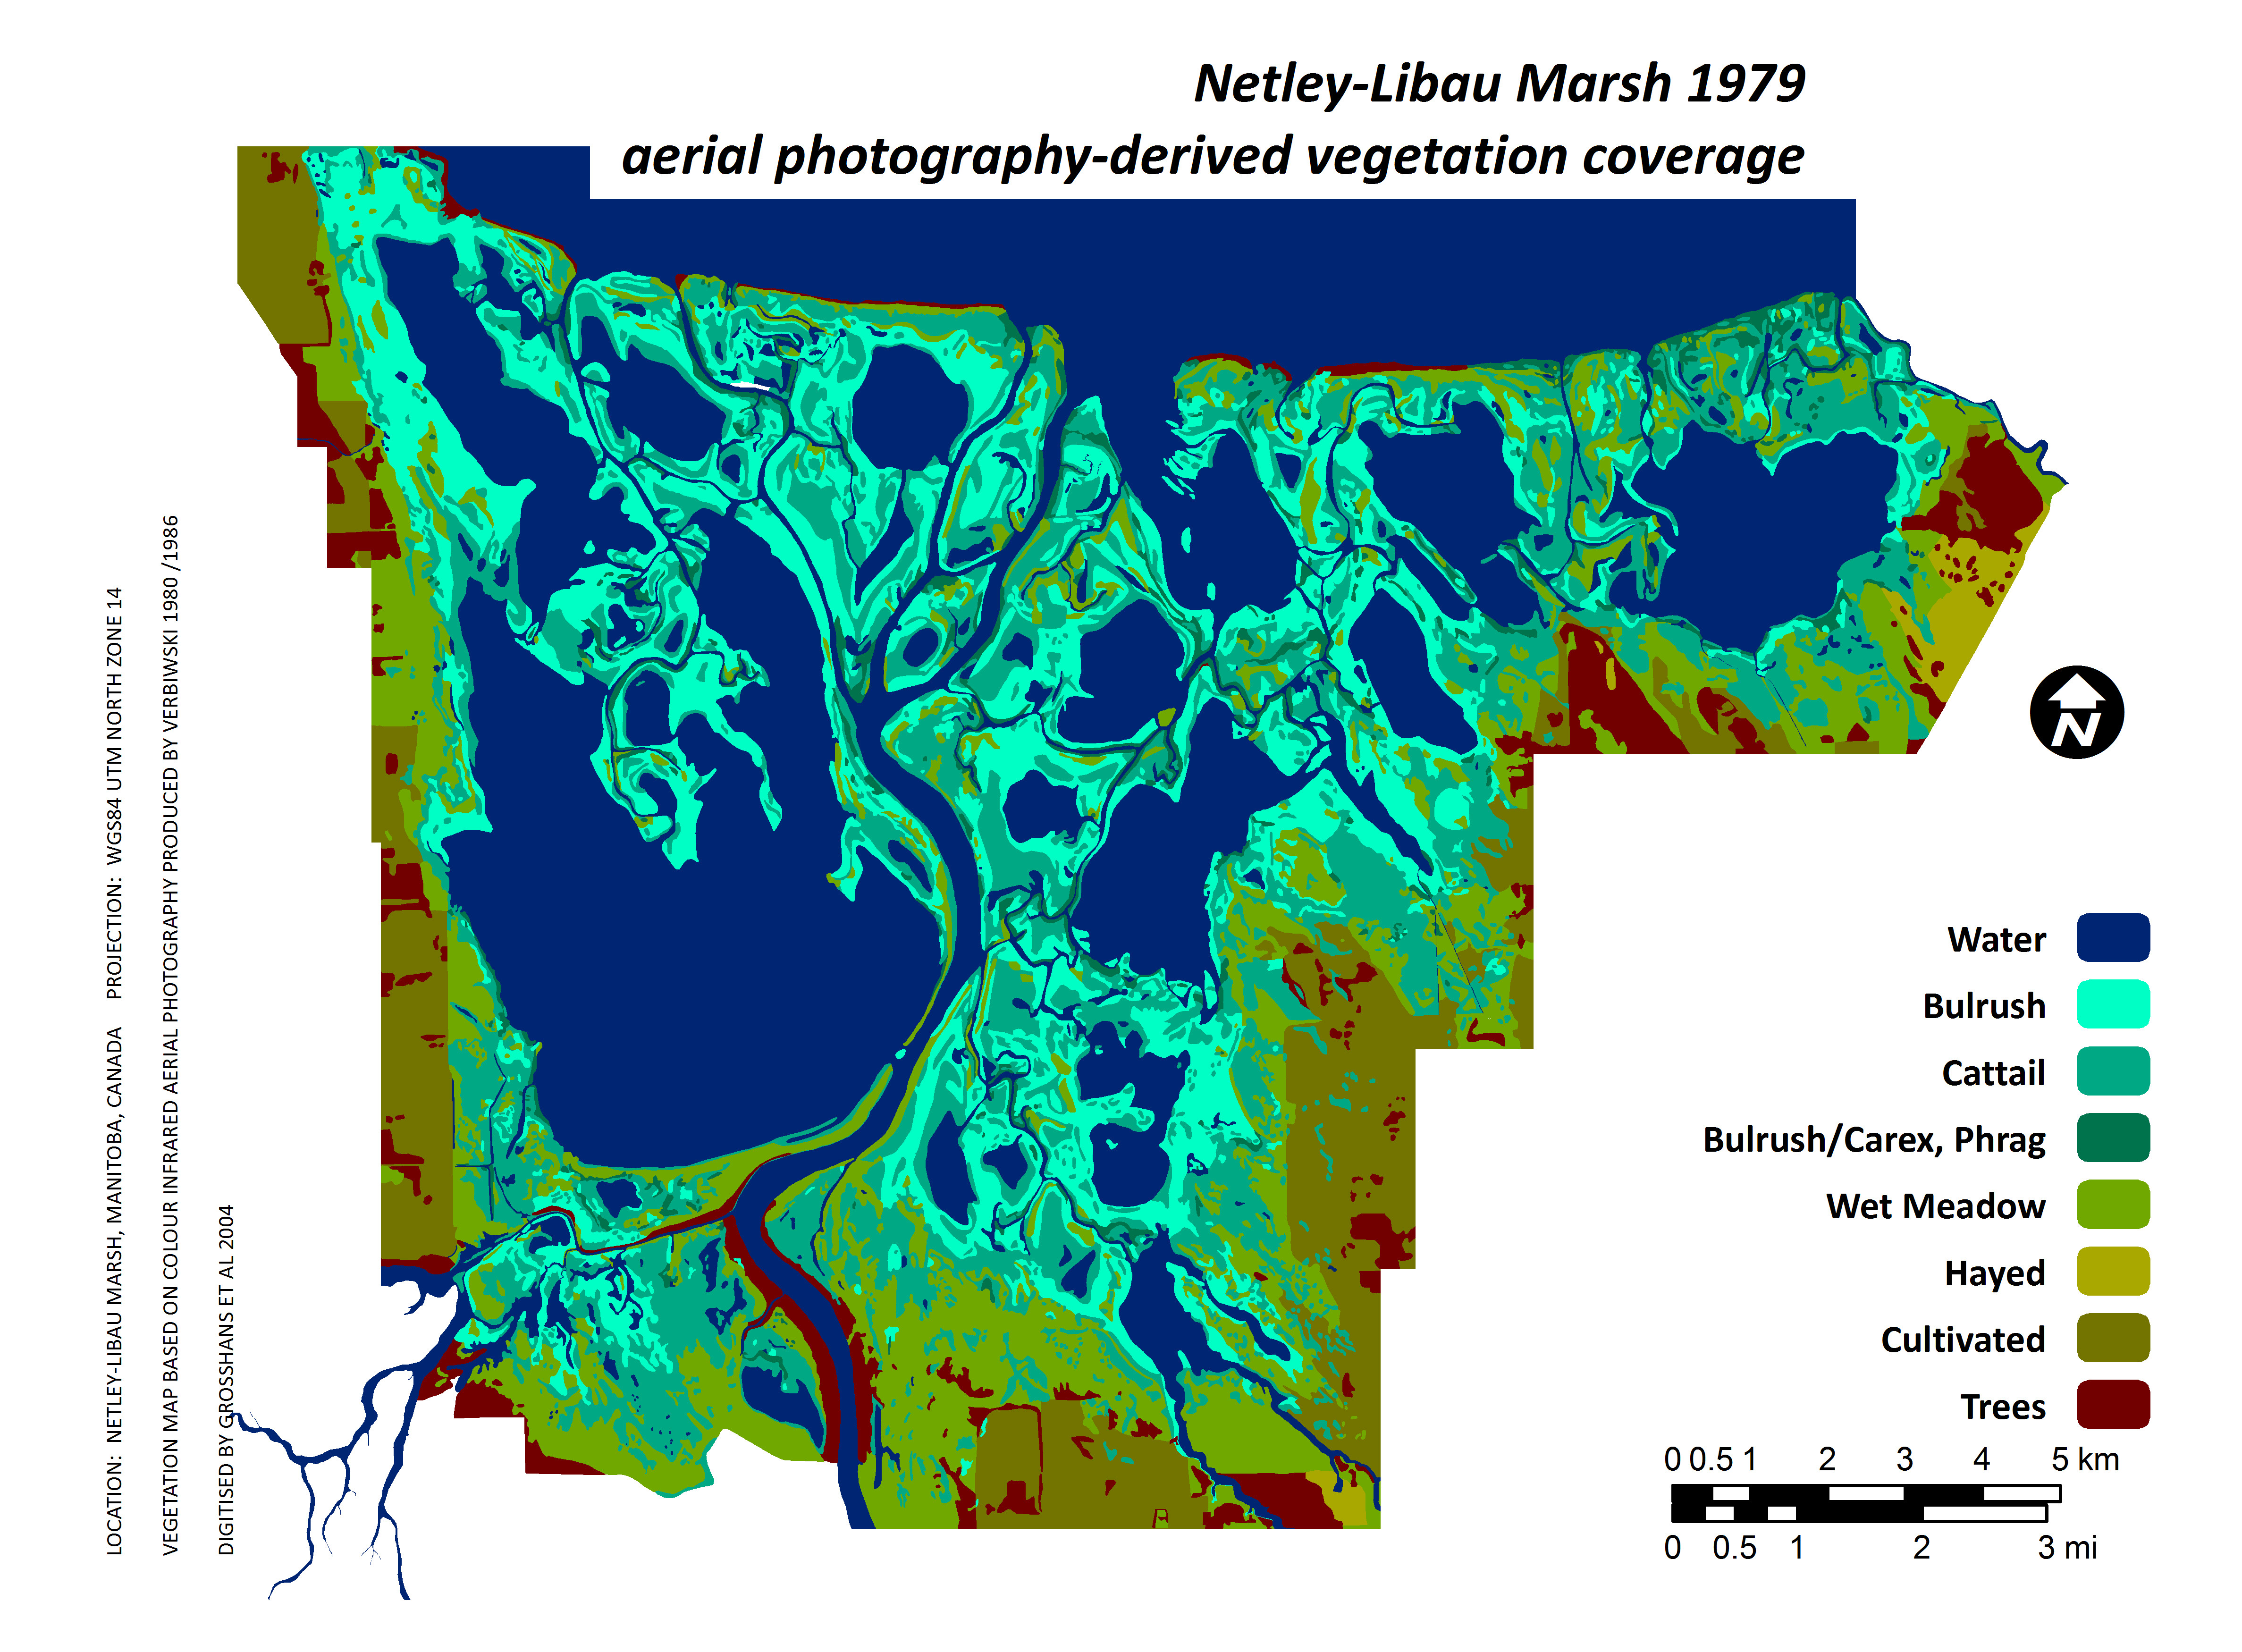 Netley-Libeau Marsh Map Series 8.1;Netley-Libeau Marsh Animation of Map Series 8.2;Netley-Libeau Marsh Animation of Map Series 8.3;Netley-Libeau Marsh Animation of Map Series 8.4